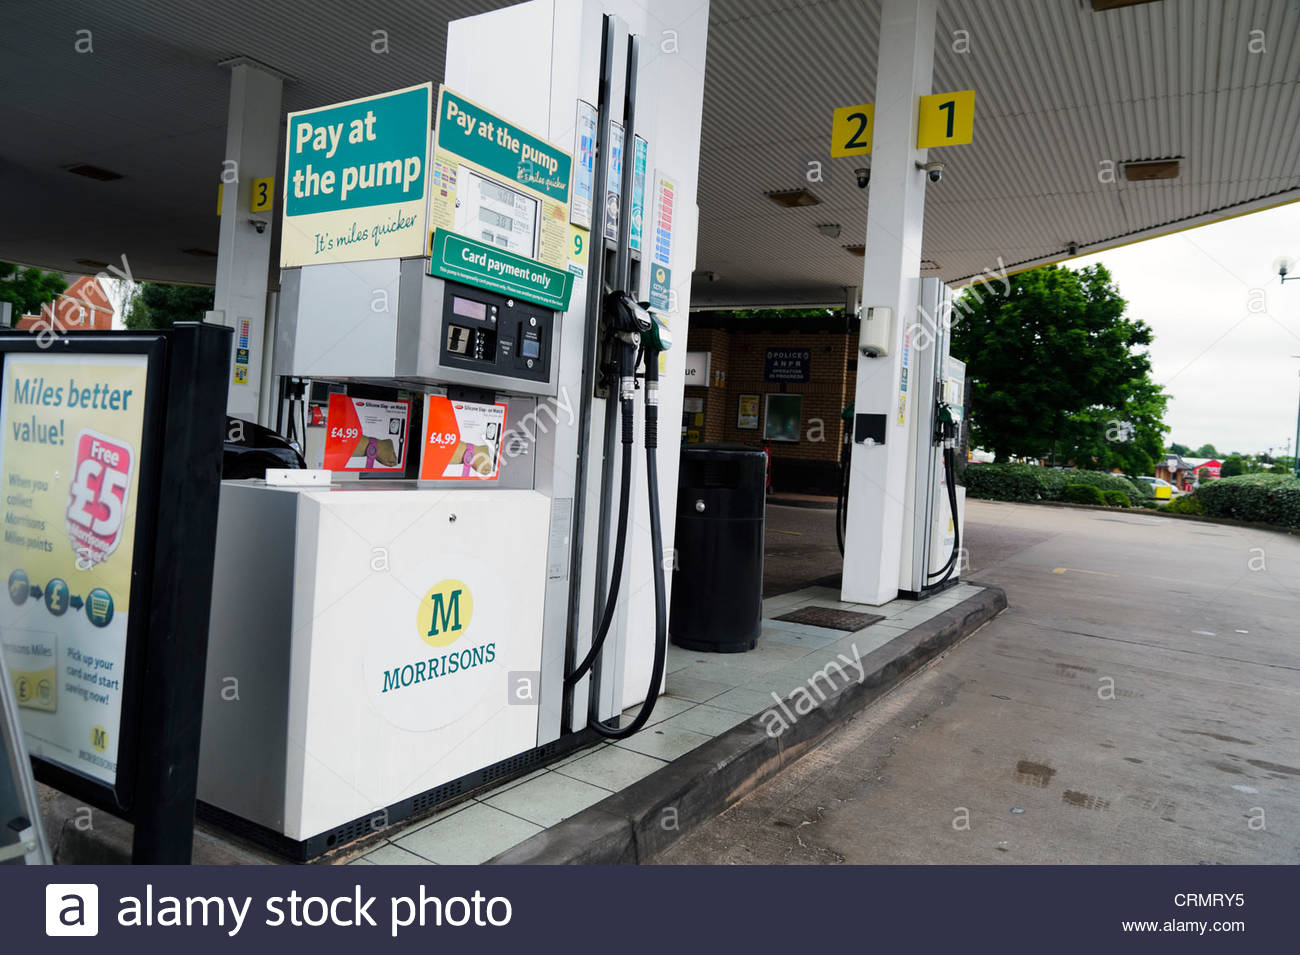 Morrisons supermarket petrol pump, Coventry, UK Stock Photo ...